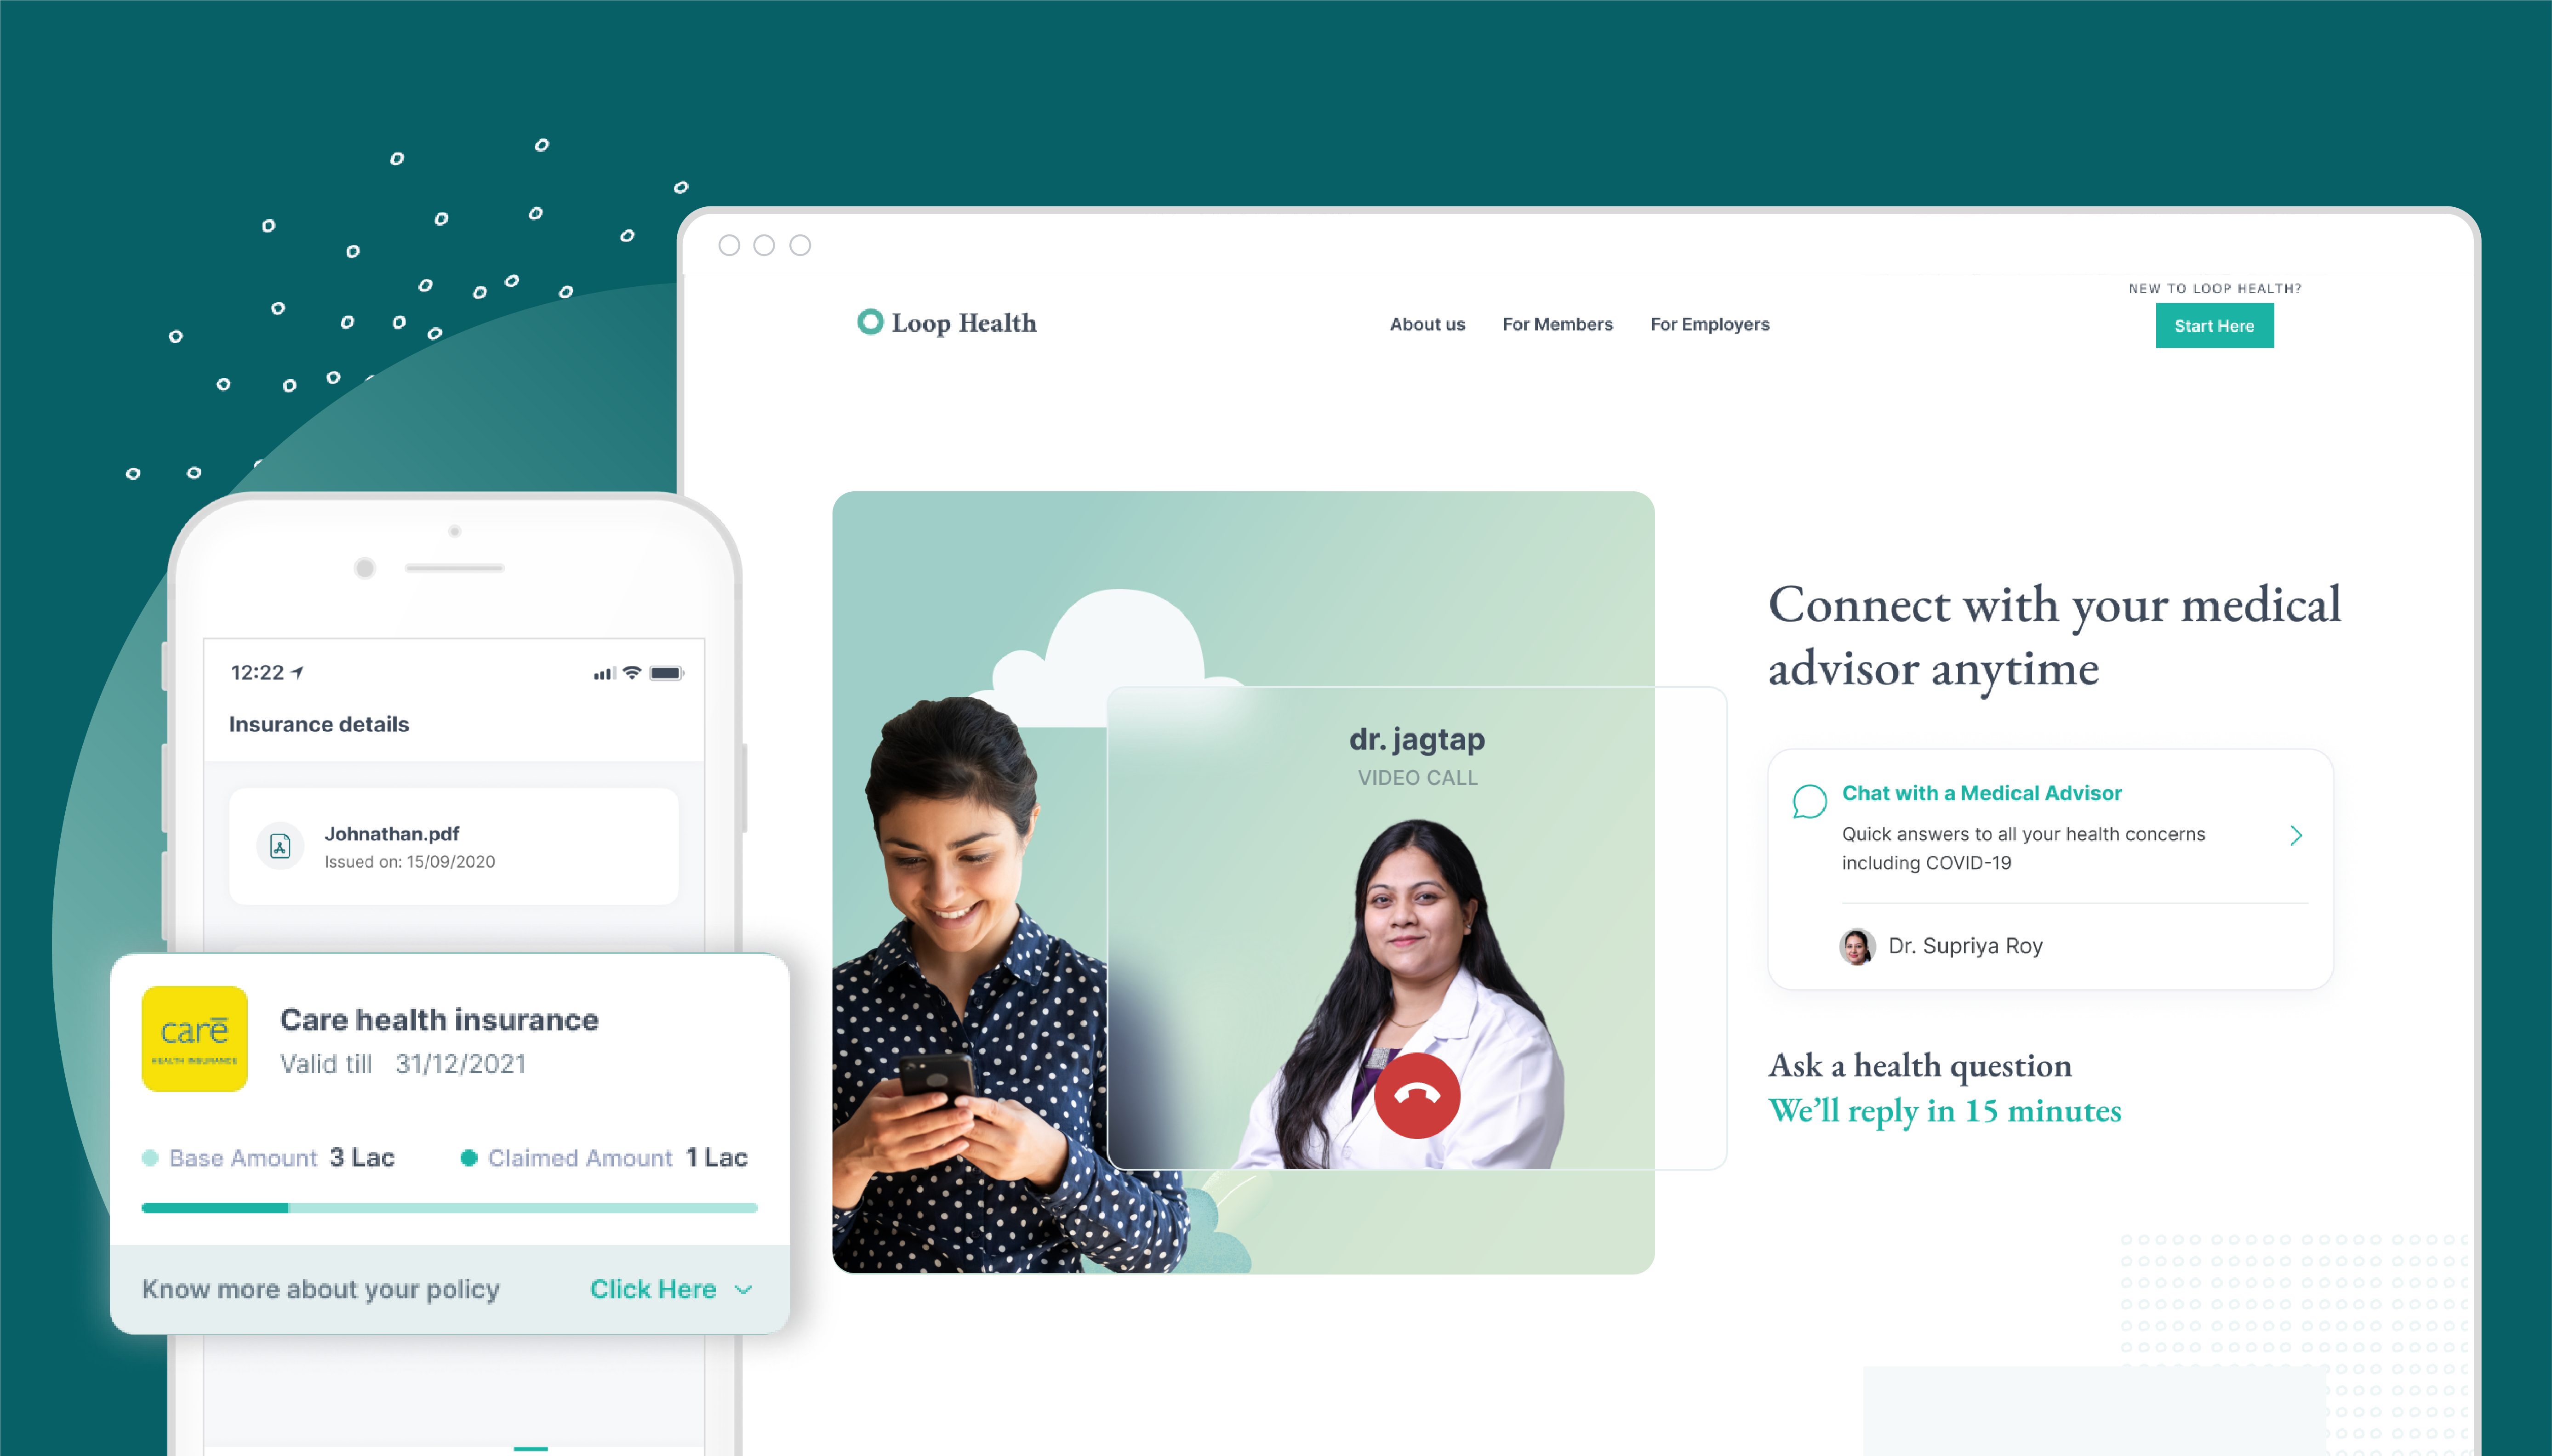 Elevation Capital, General Catalyst lead $12M round into health insurance startup Loop Health